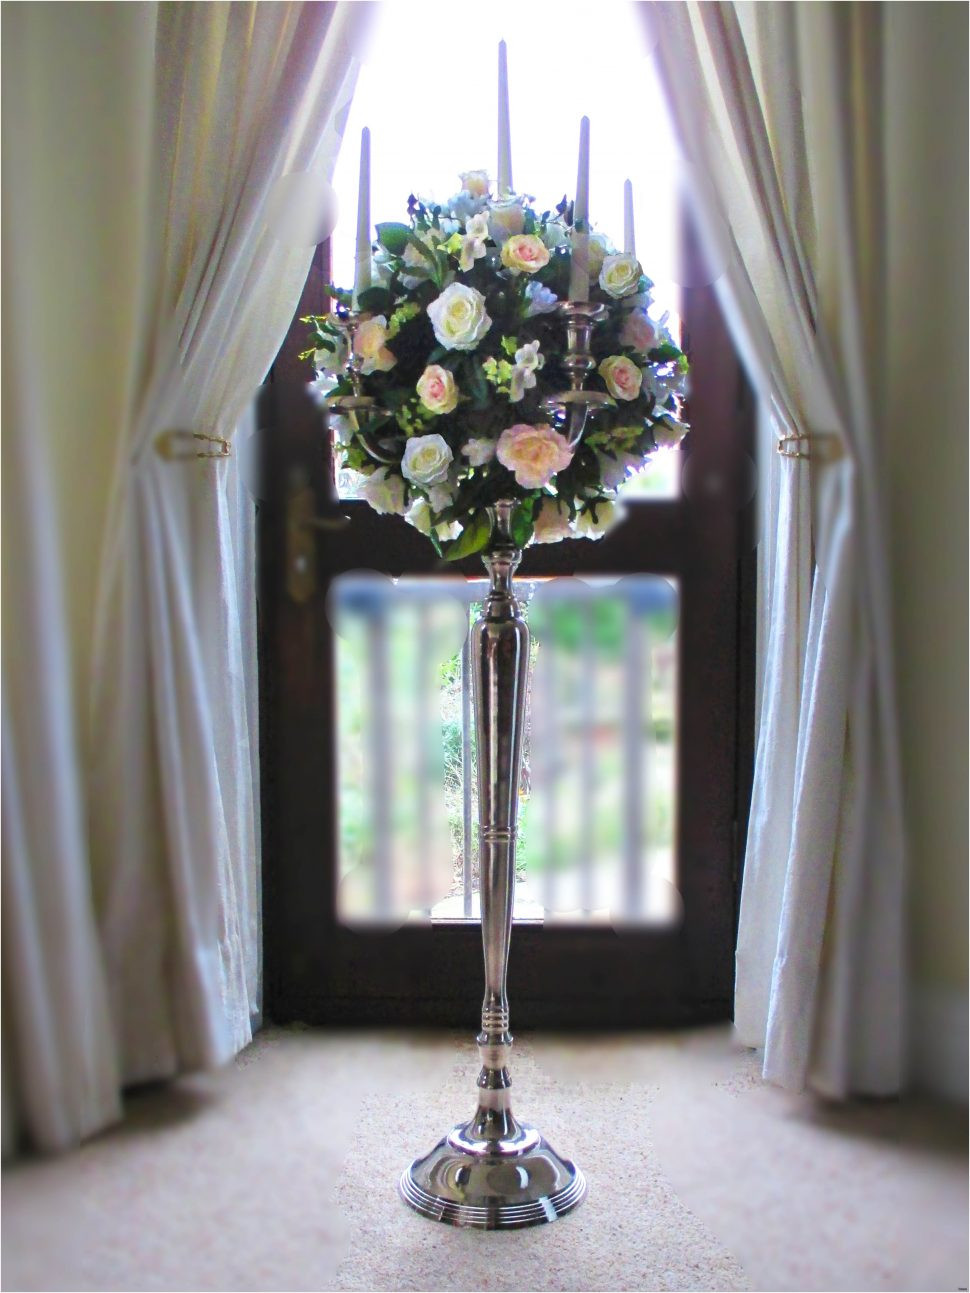 Faux Flower Arrangements In Vase Of Silk Flowers In Silver Vase Flowers Healthy with Fall Silk Flowers Awful Wedding Bouquets Packages 5397h Vases Silver Vase Leeds I 0d 3456